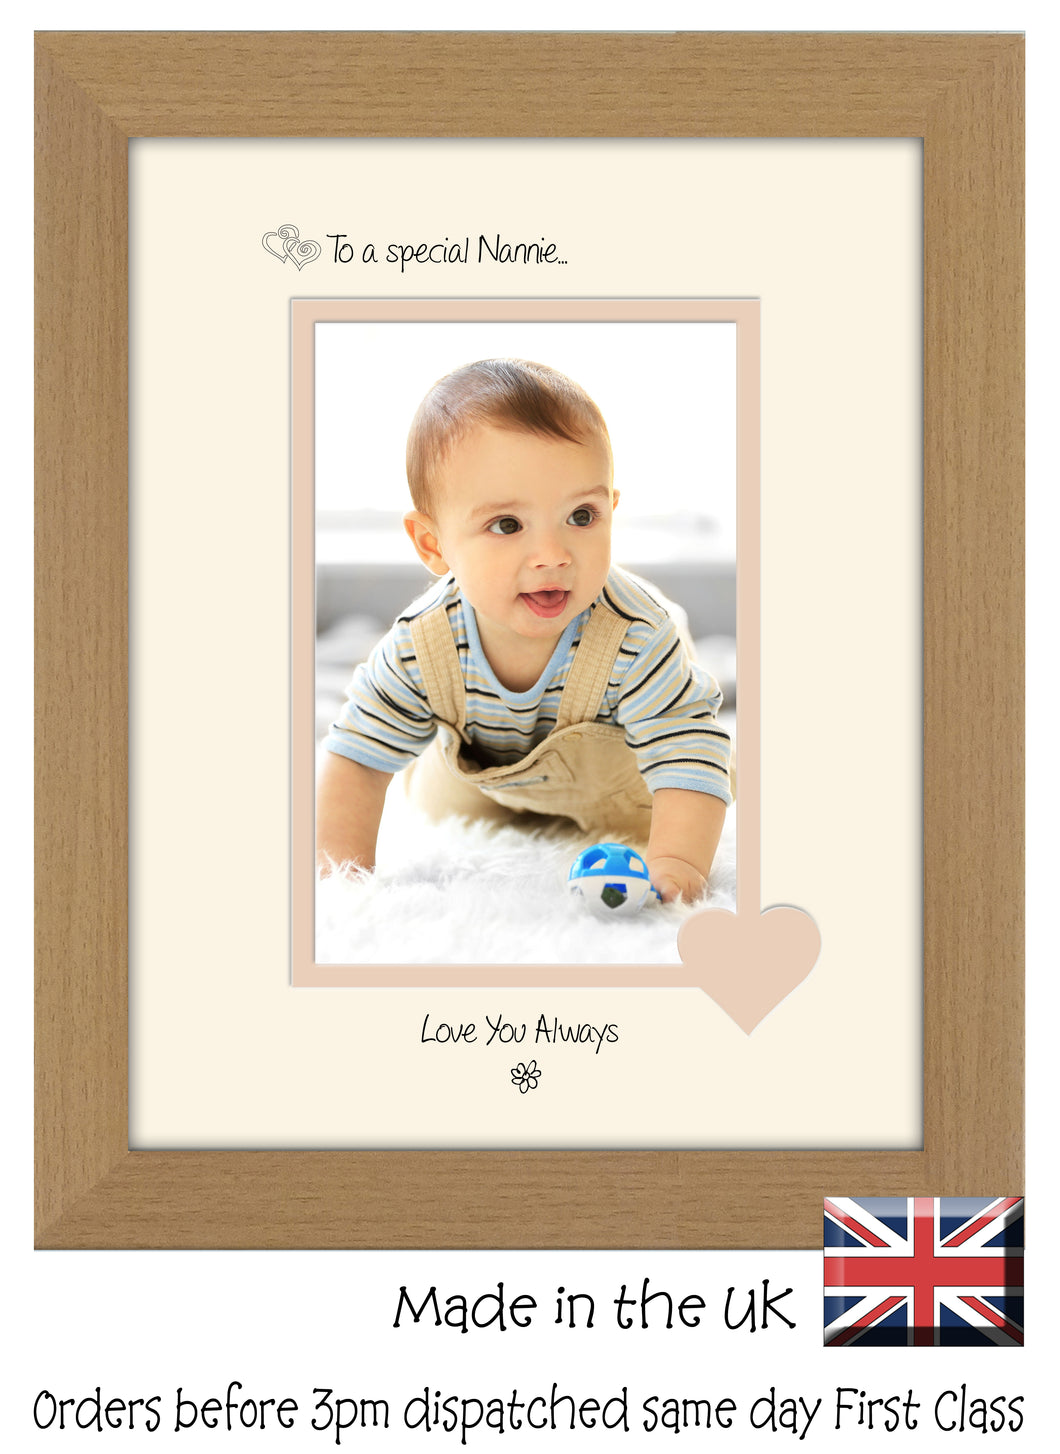 Nannie Photo Frame - To a Special Nannie... Love you Always Portrait photo frame 6